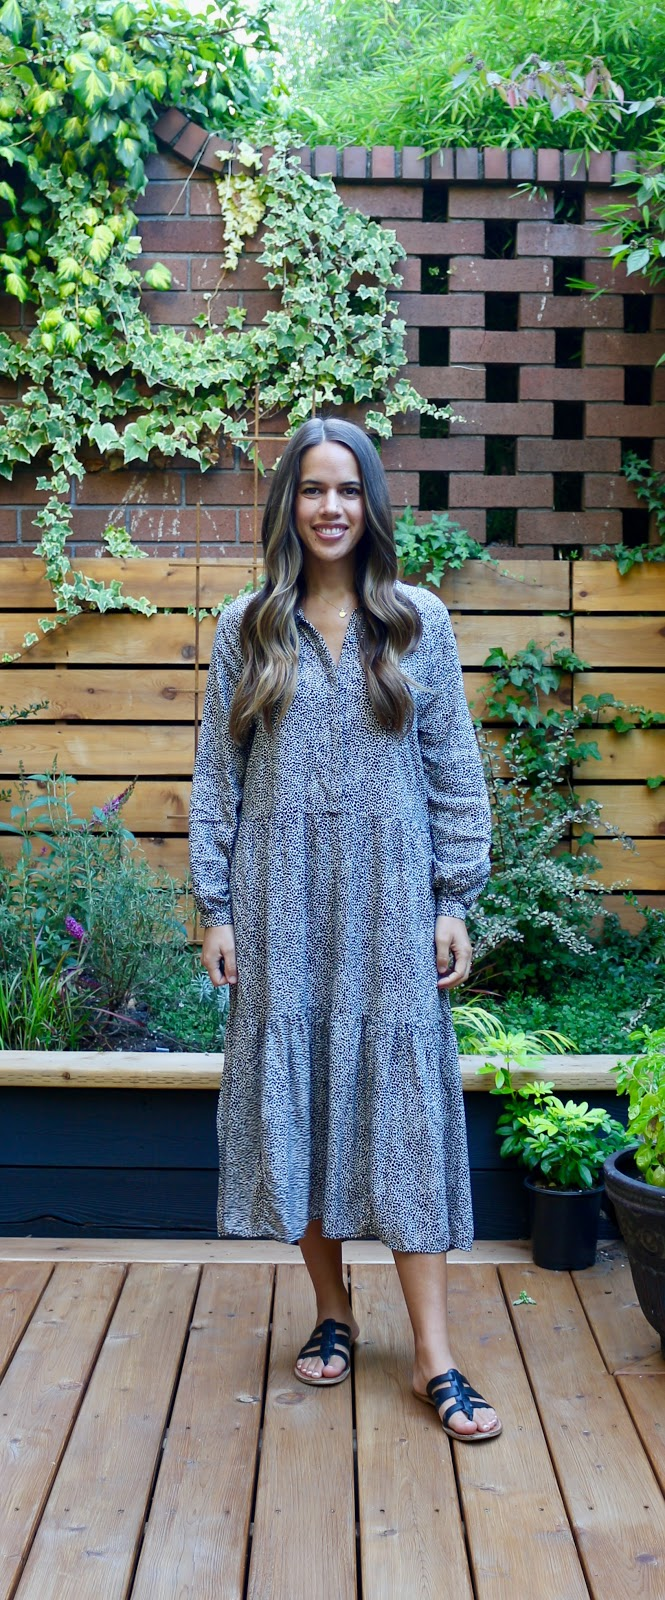 Jules in Flats - H&M Long Sleeve Midi Dress (Business Casual Workwear on a Budget)